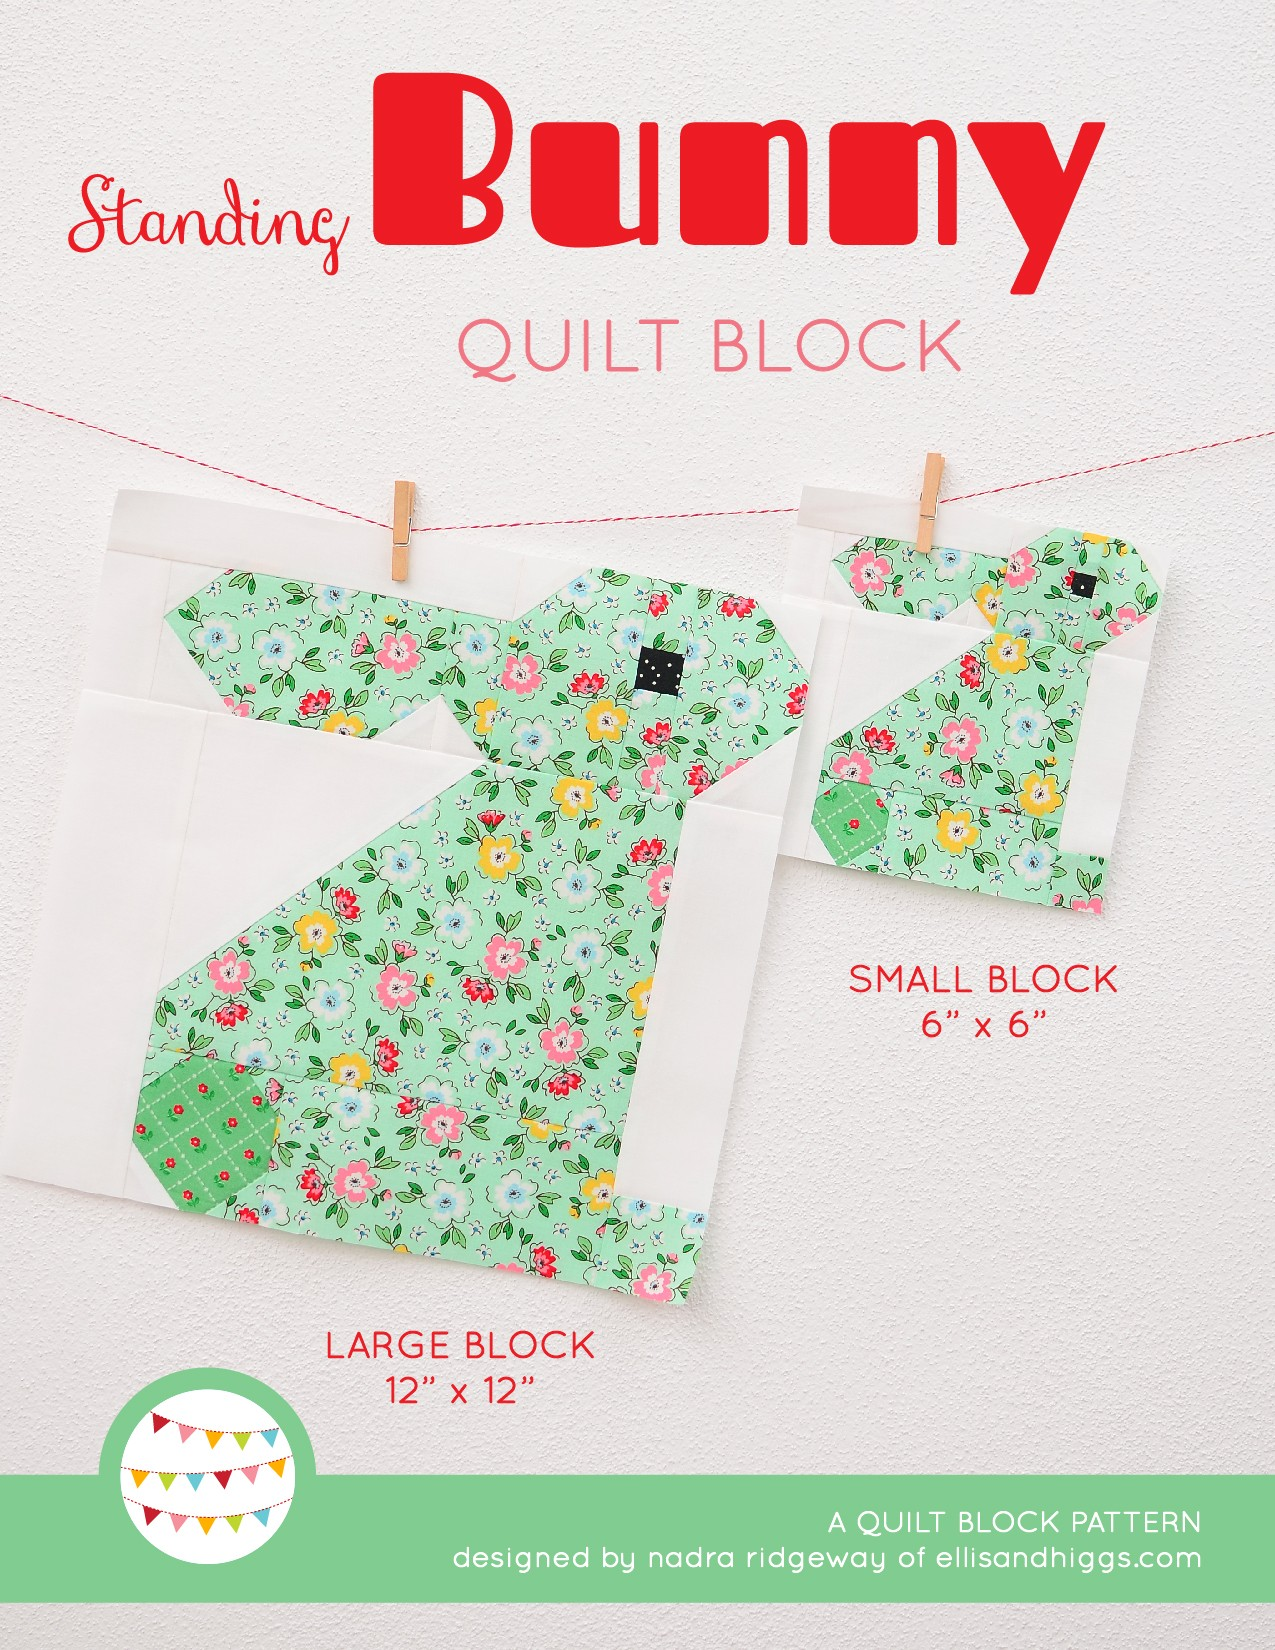 Standing Bunny Little Block - Easter Quilt Pattern